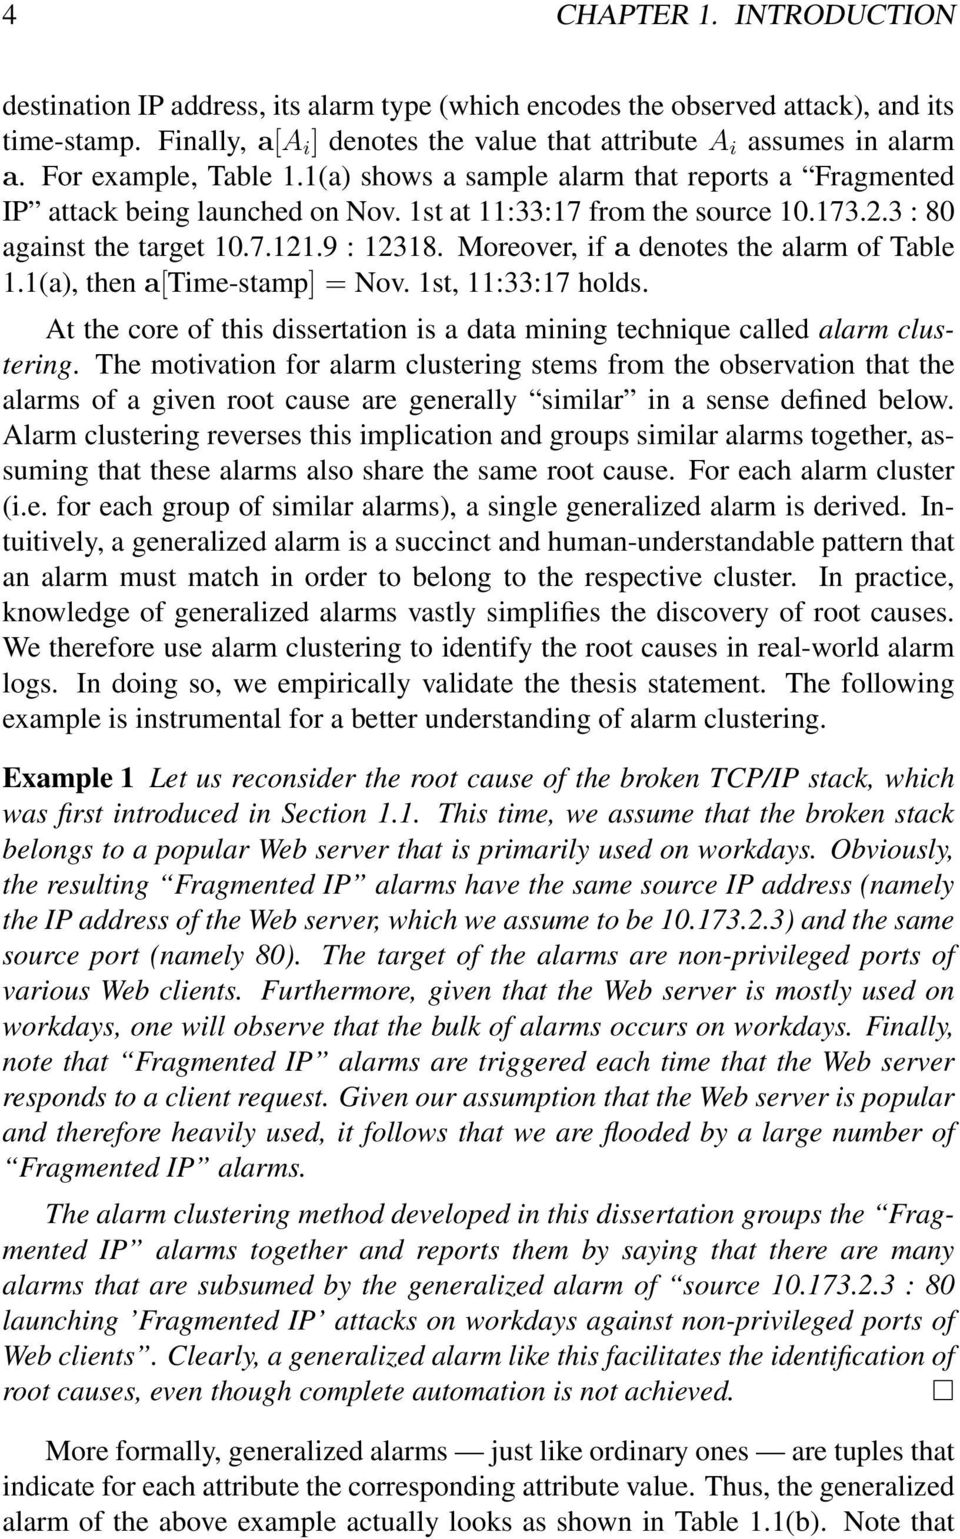 Moreover, if a denotes the alarm of Table 1.1(a), then a[time-stamp] = Nov. 1st, 11:33:17 holds. At the core of this dissertation is a data mining technique called alarm clustering.